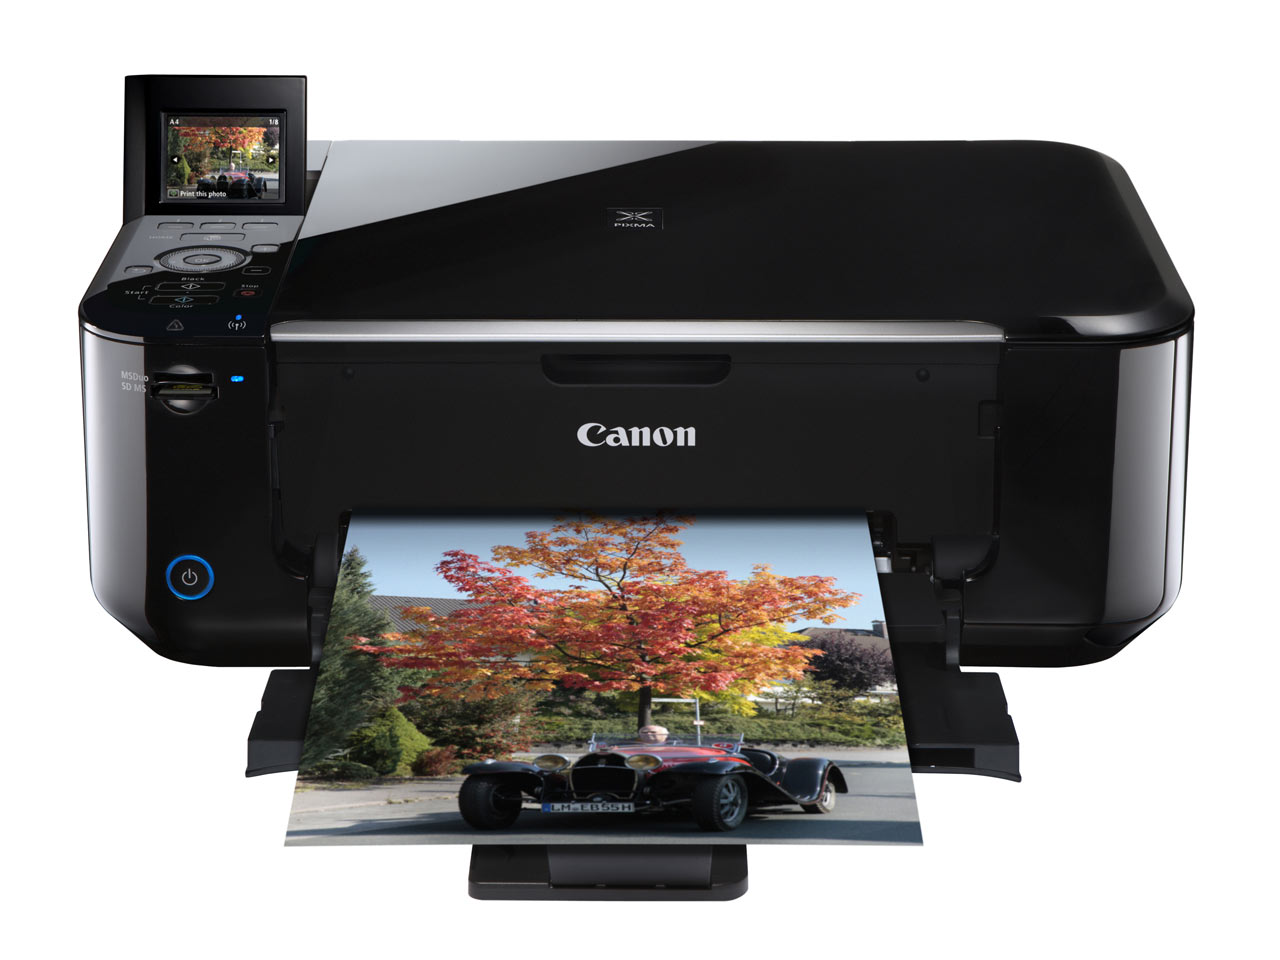 Canon launches pixma mg4120 mg3120 and mg2120 all in one printers additional images canon pixma mg3120 maxwellsz